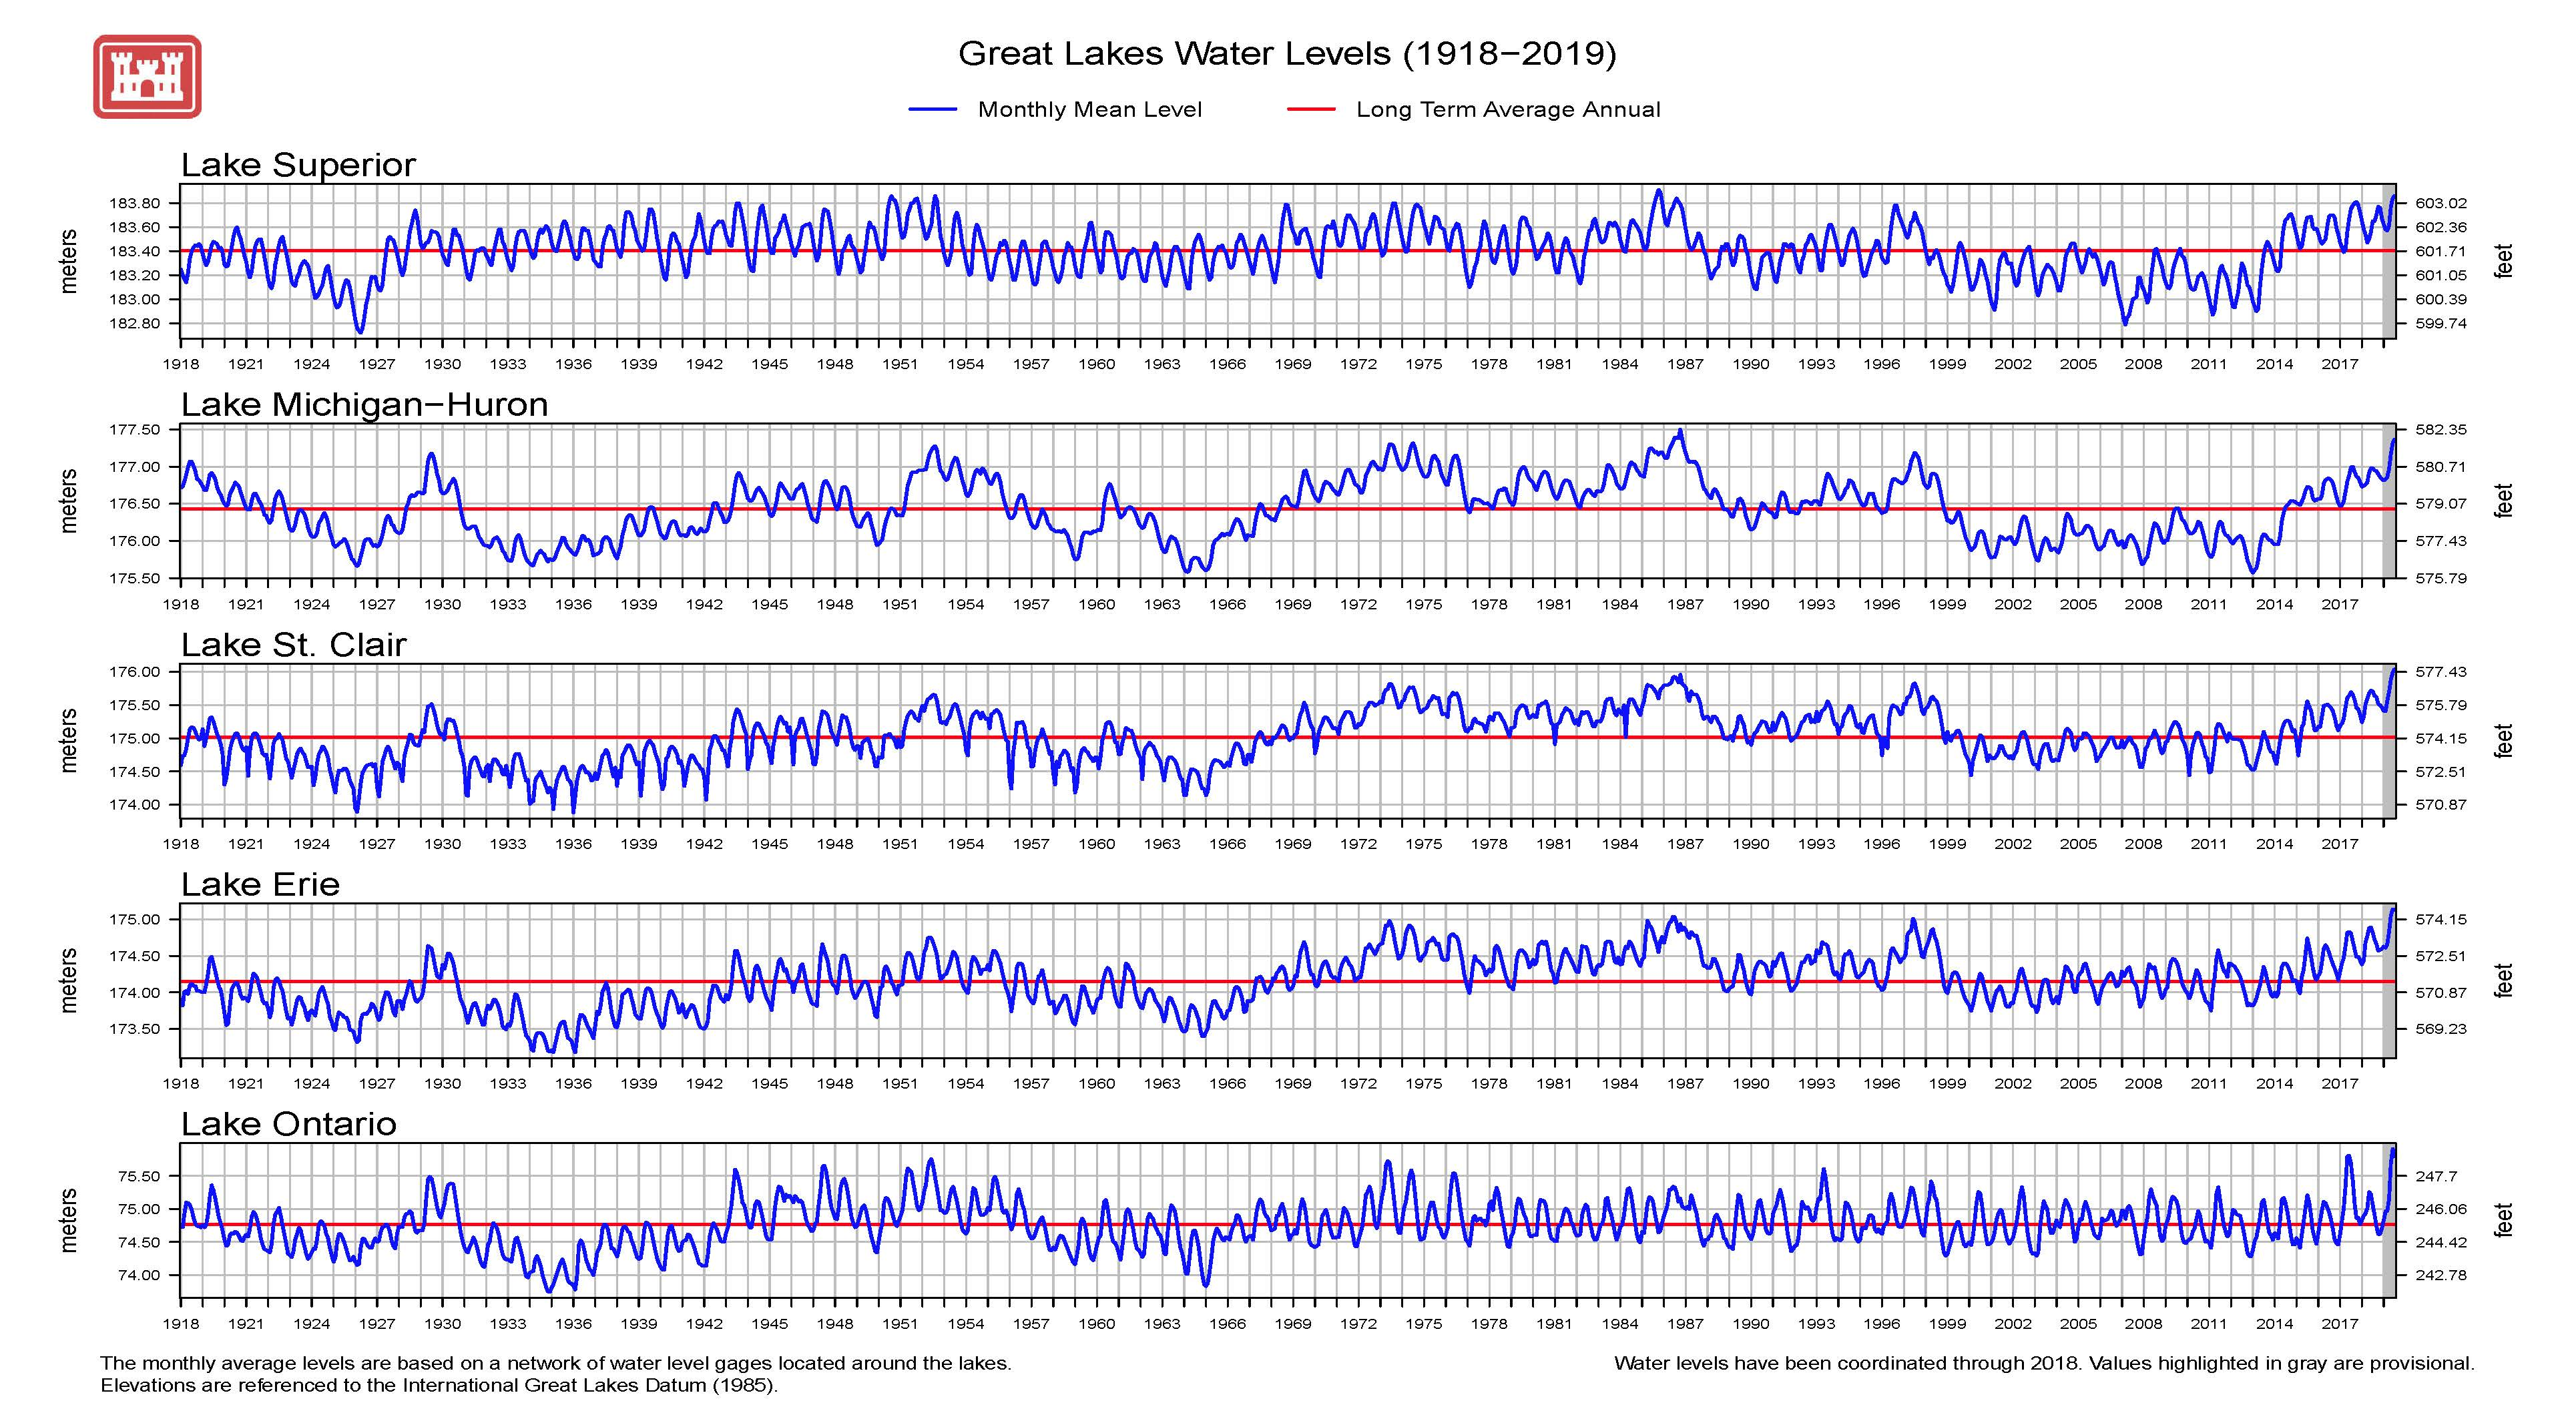 Graph of monthly mean lakewide average water levels (USACE). All levels are referenced to the International Great Lakes Datum of 1985 (IGLD 85). Water levels have been coordinated with Canada for 1918-2018.